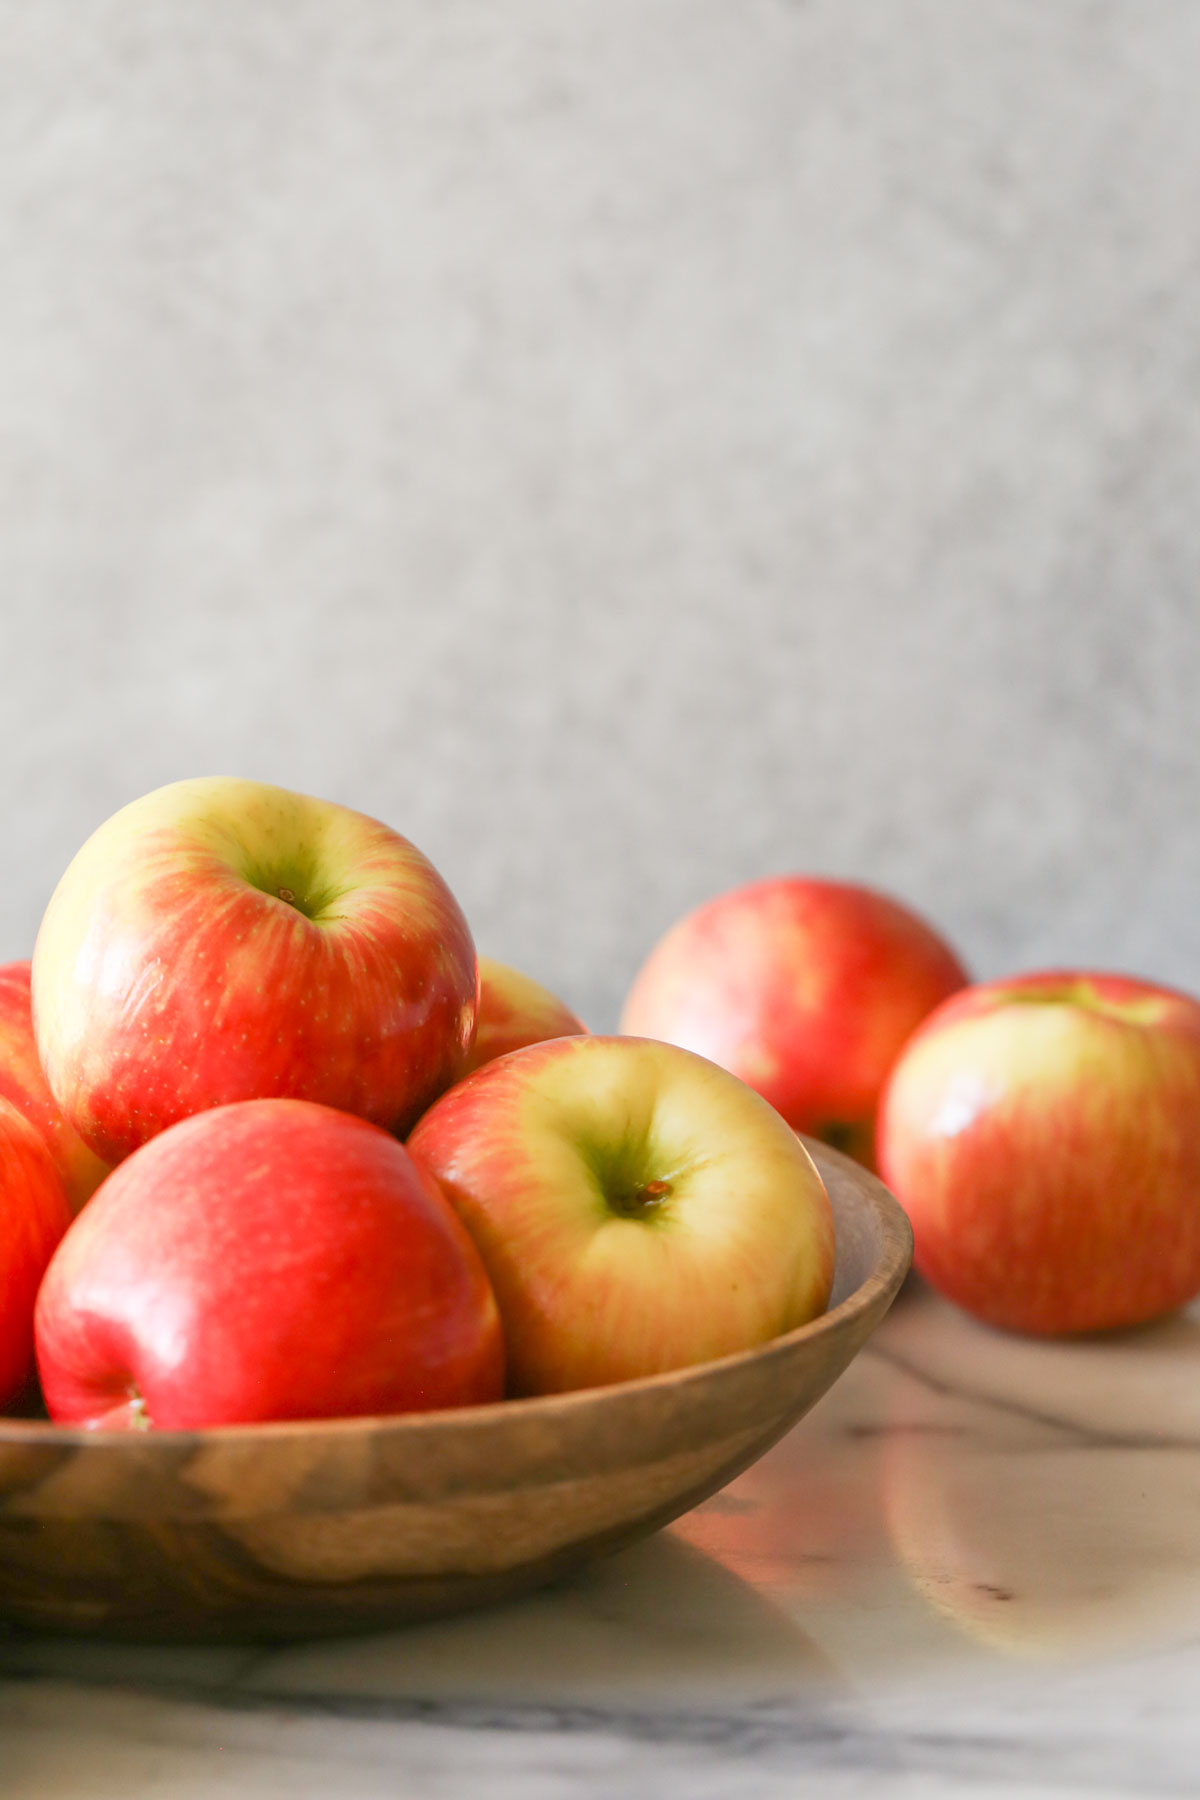 A wood bowl full of apples.